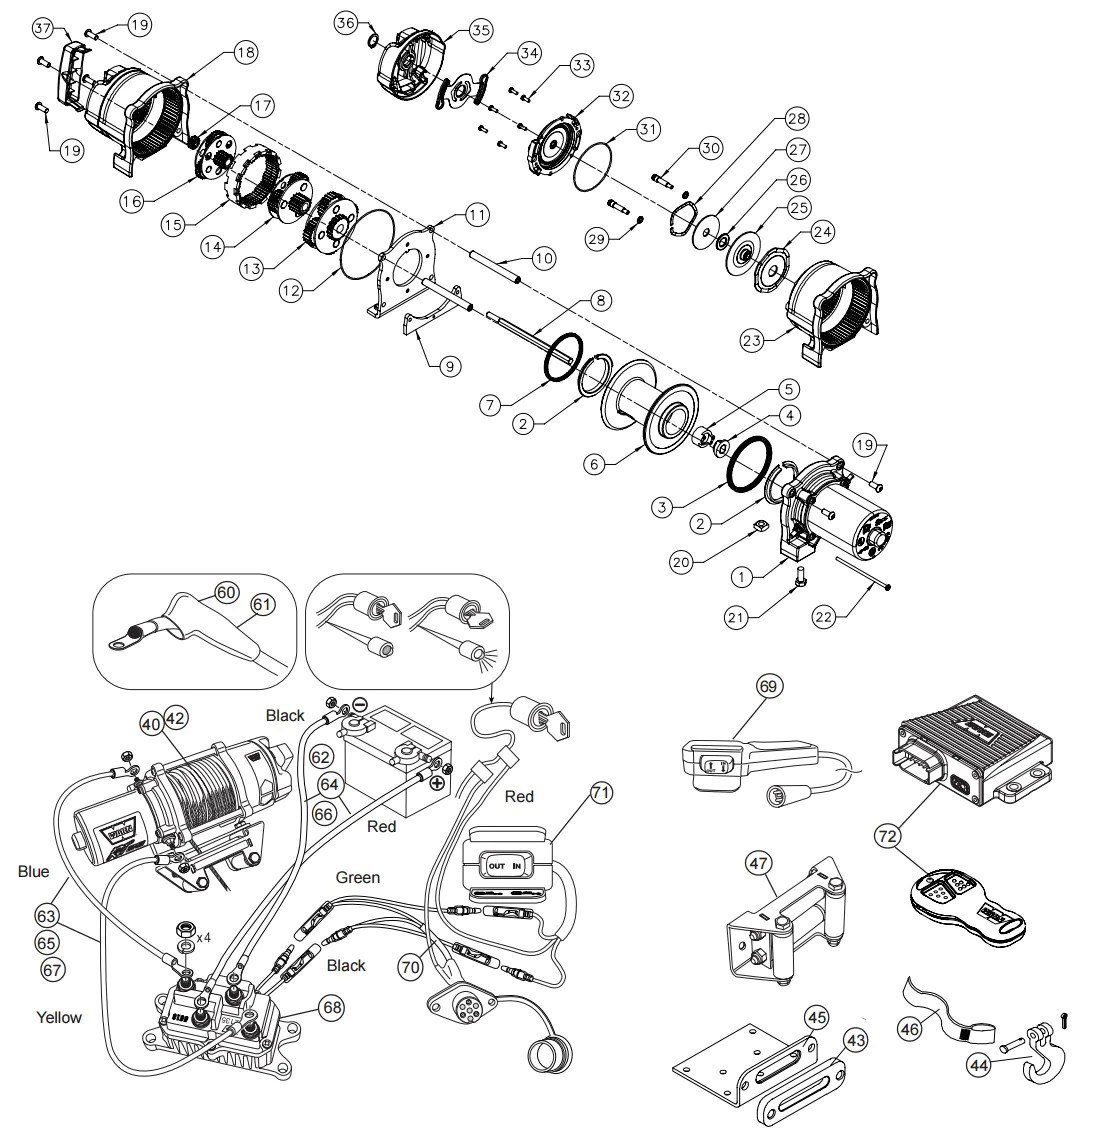 Warn Rt25 Winch Wiring Diagram